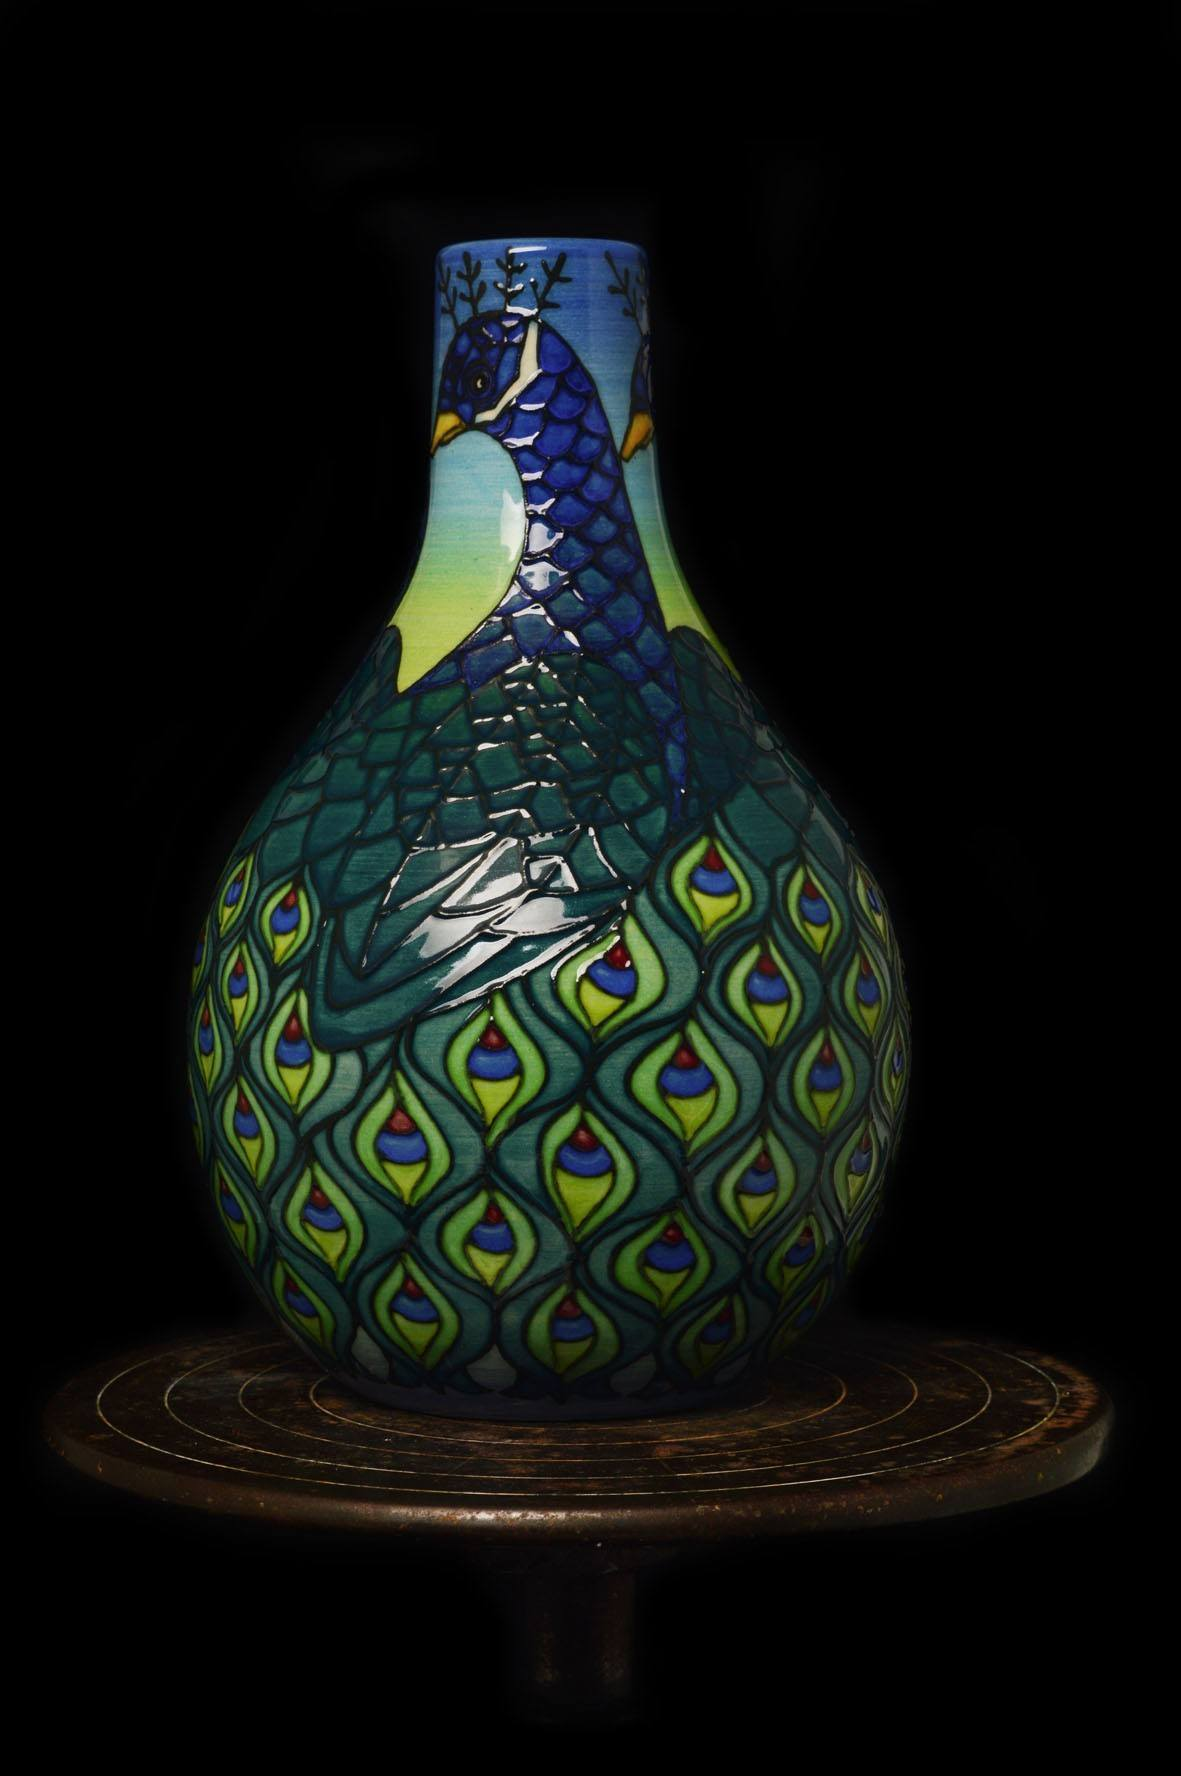 1417542374peacock-sf-bottle-4.jpg